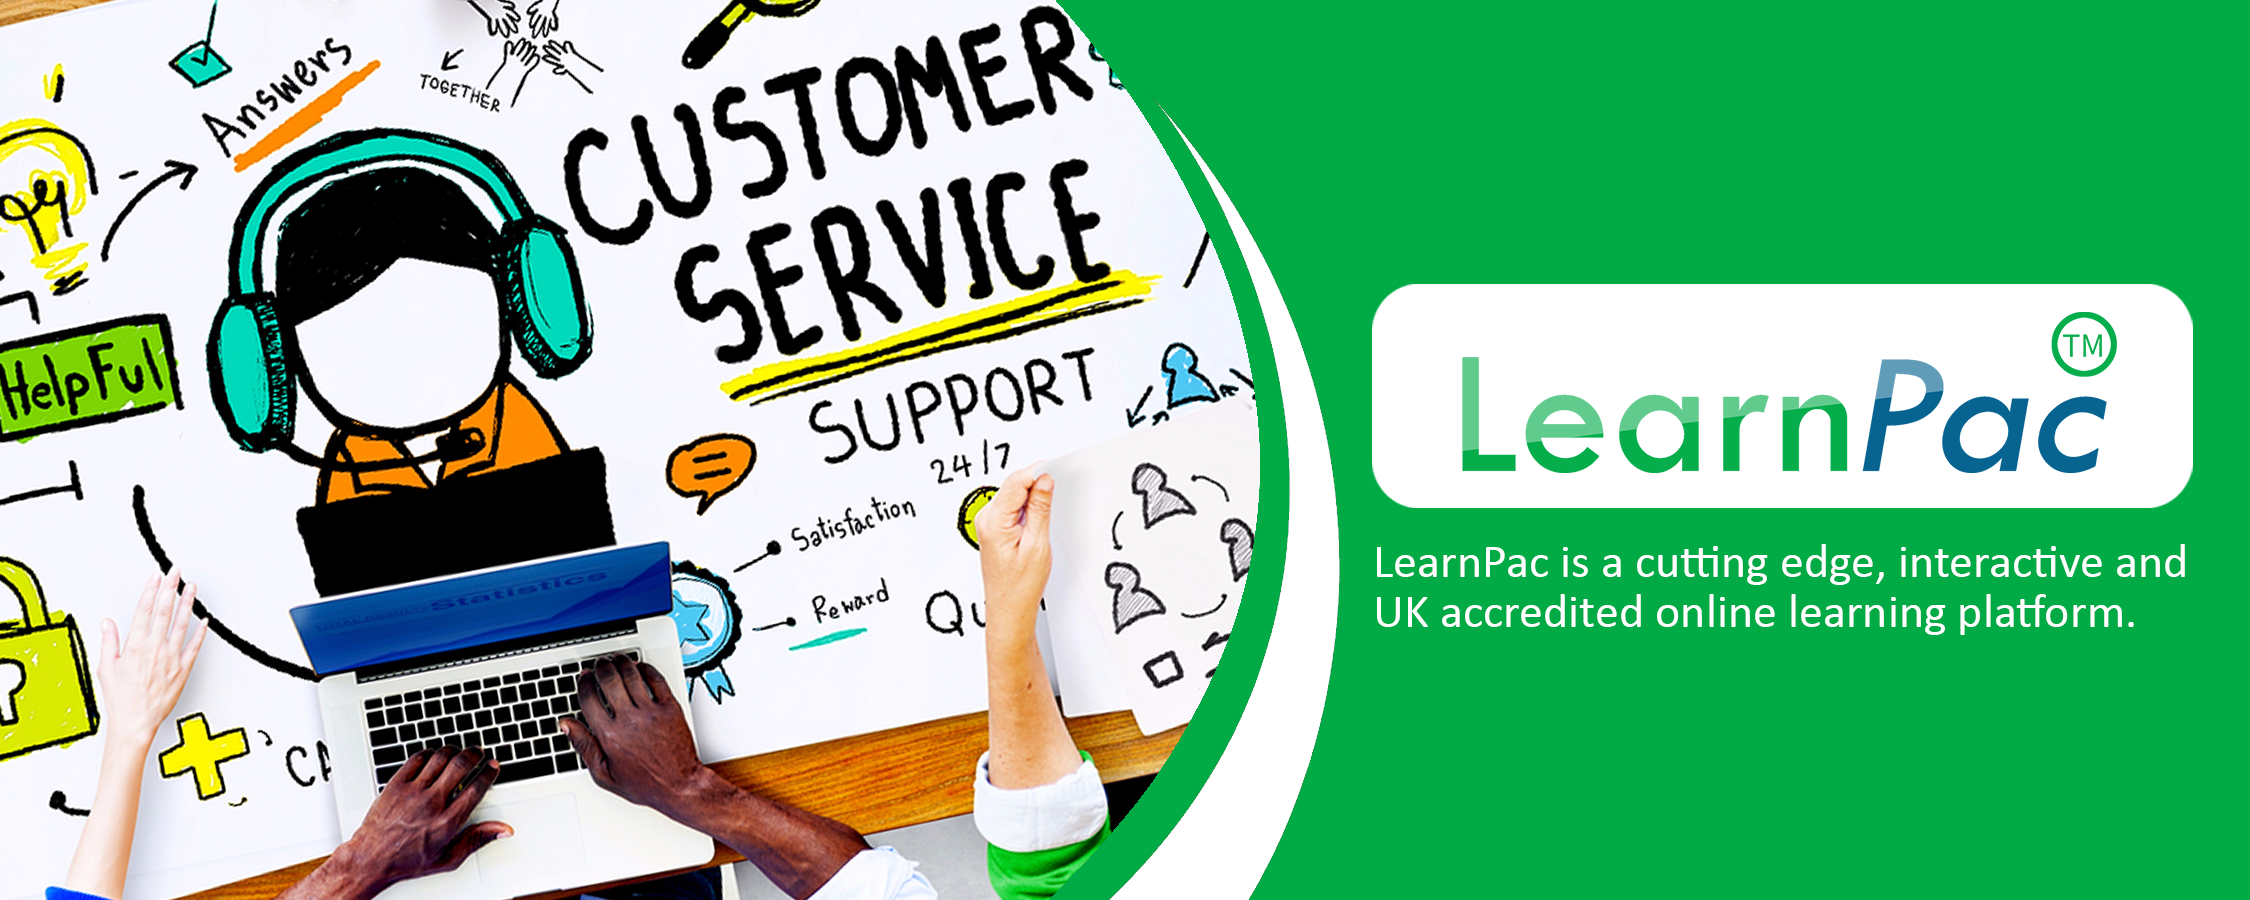 Certified - Learpac Systems UK -